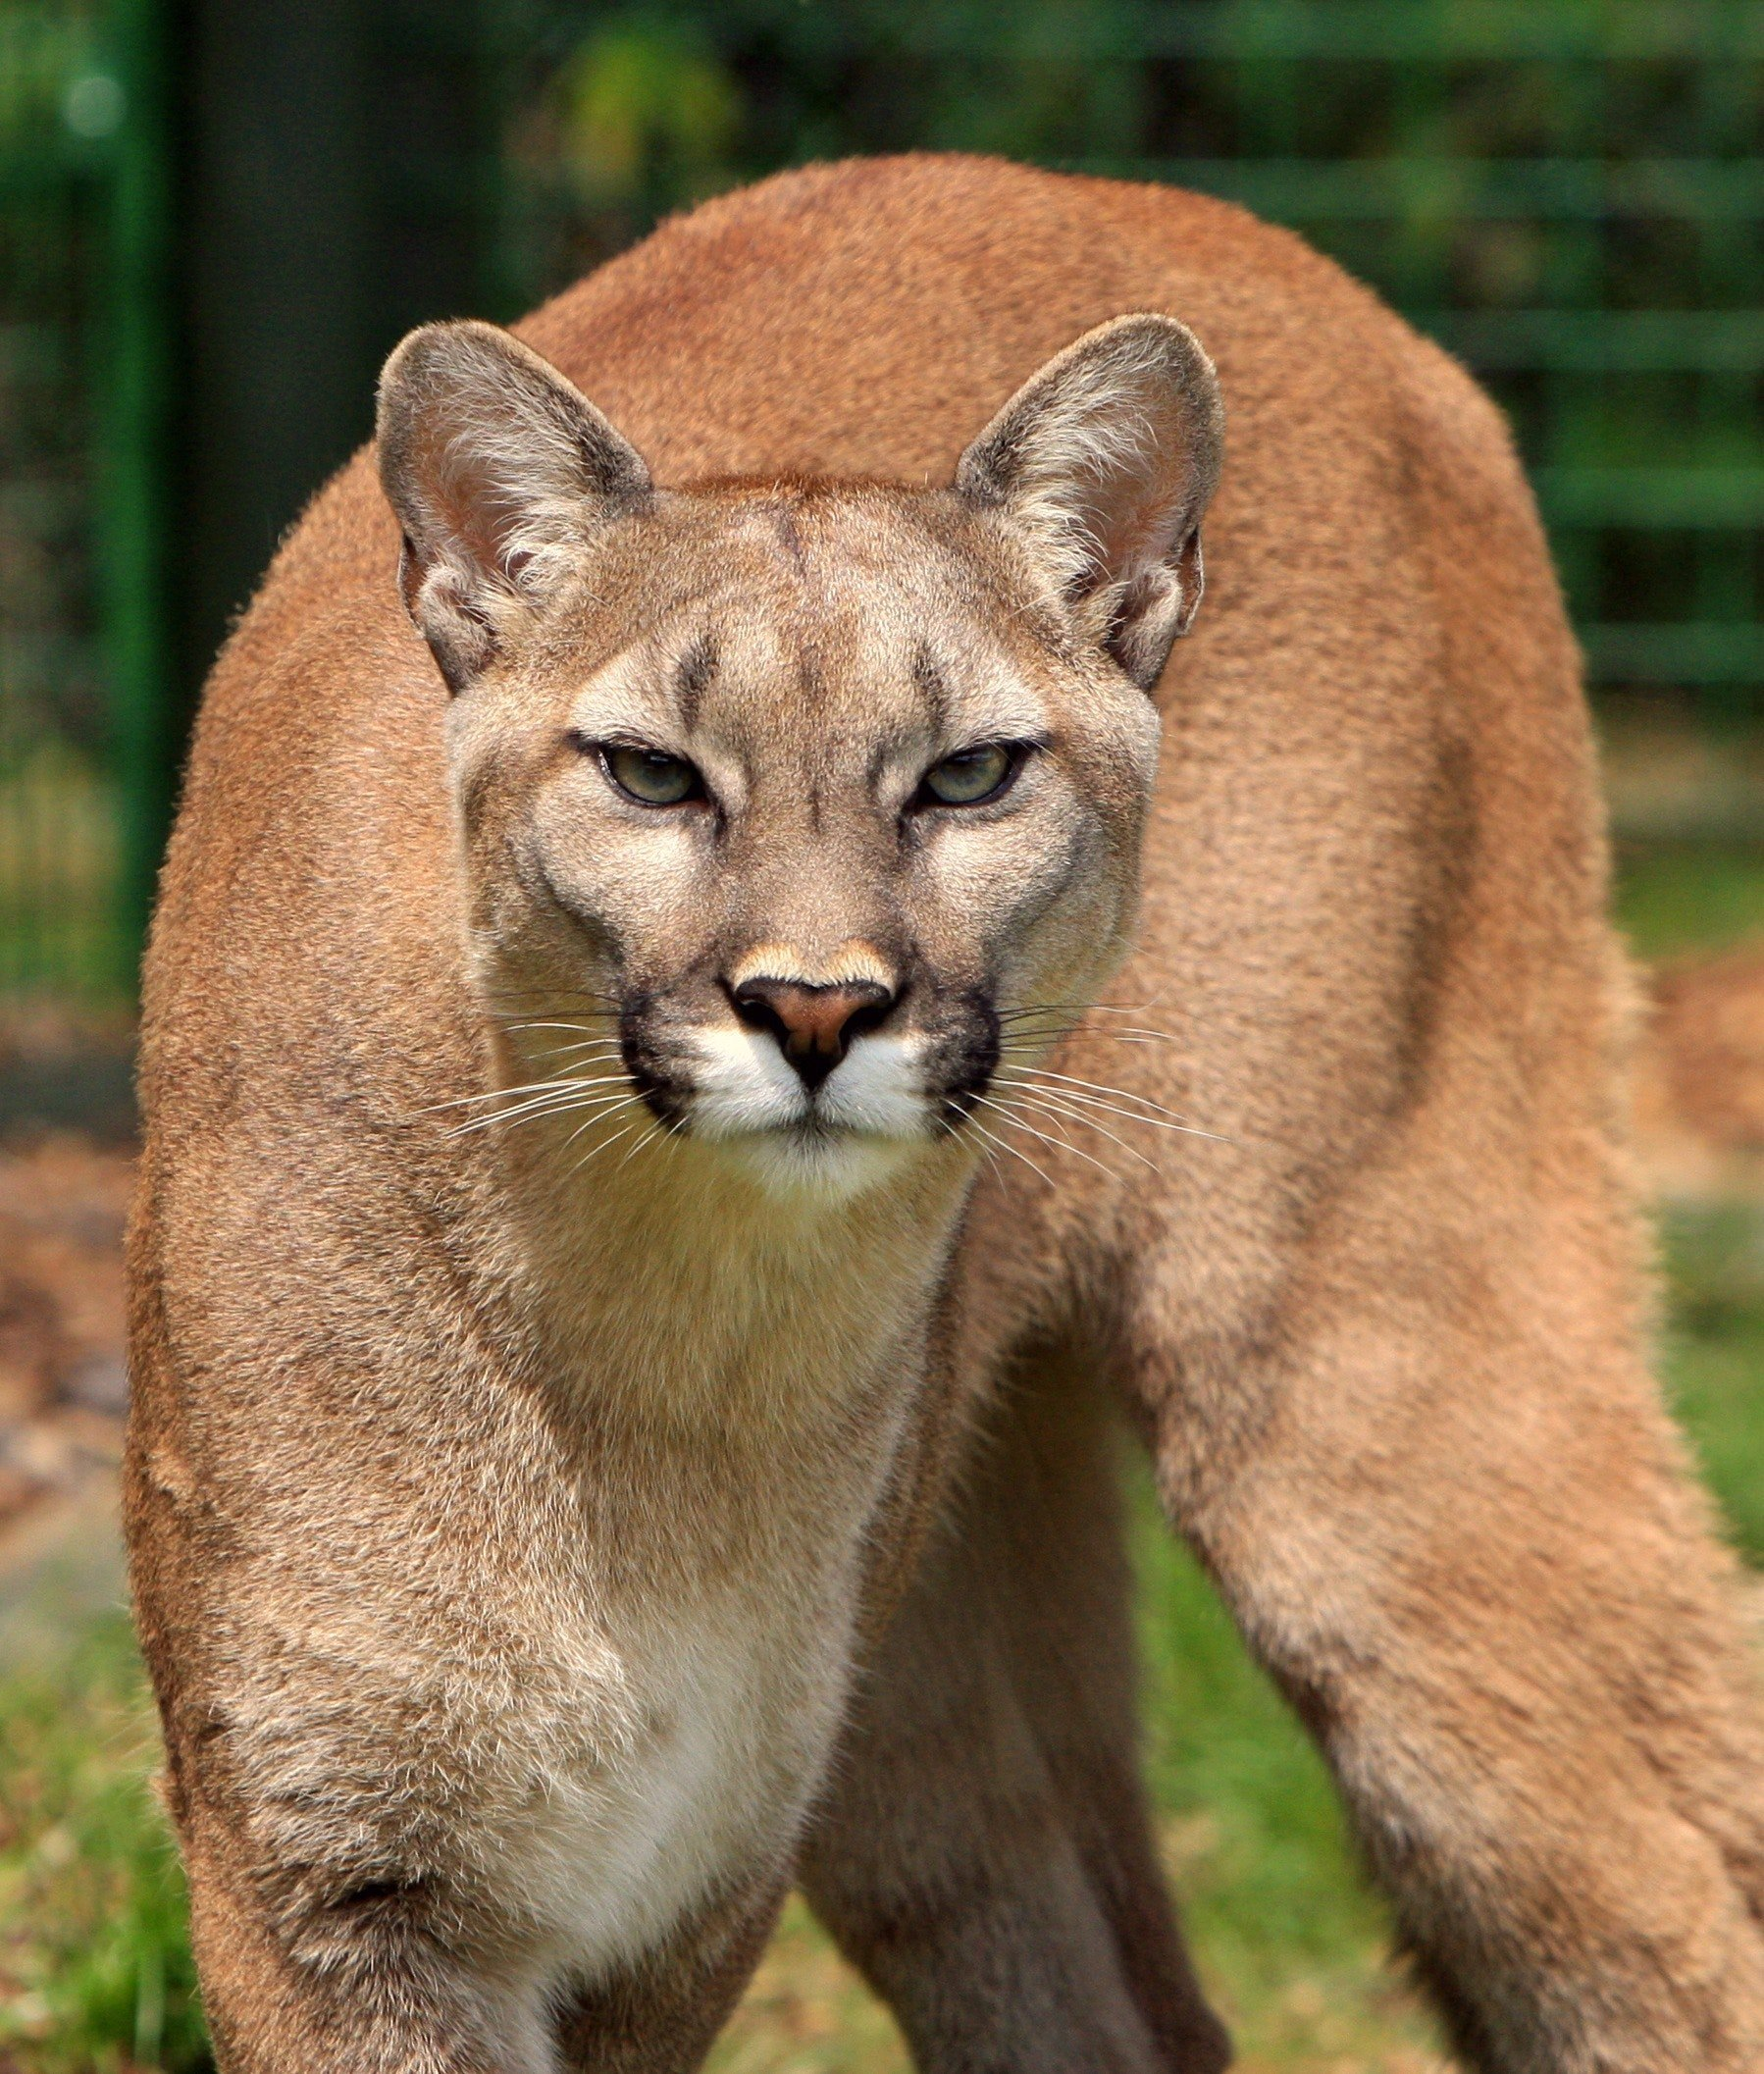 A prying cougar. | Source: Pexels